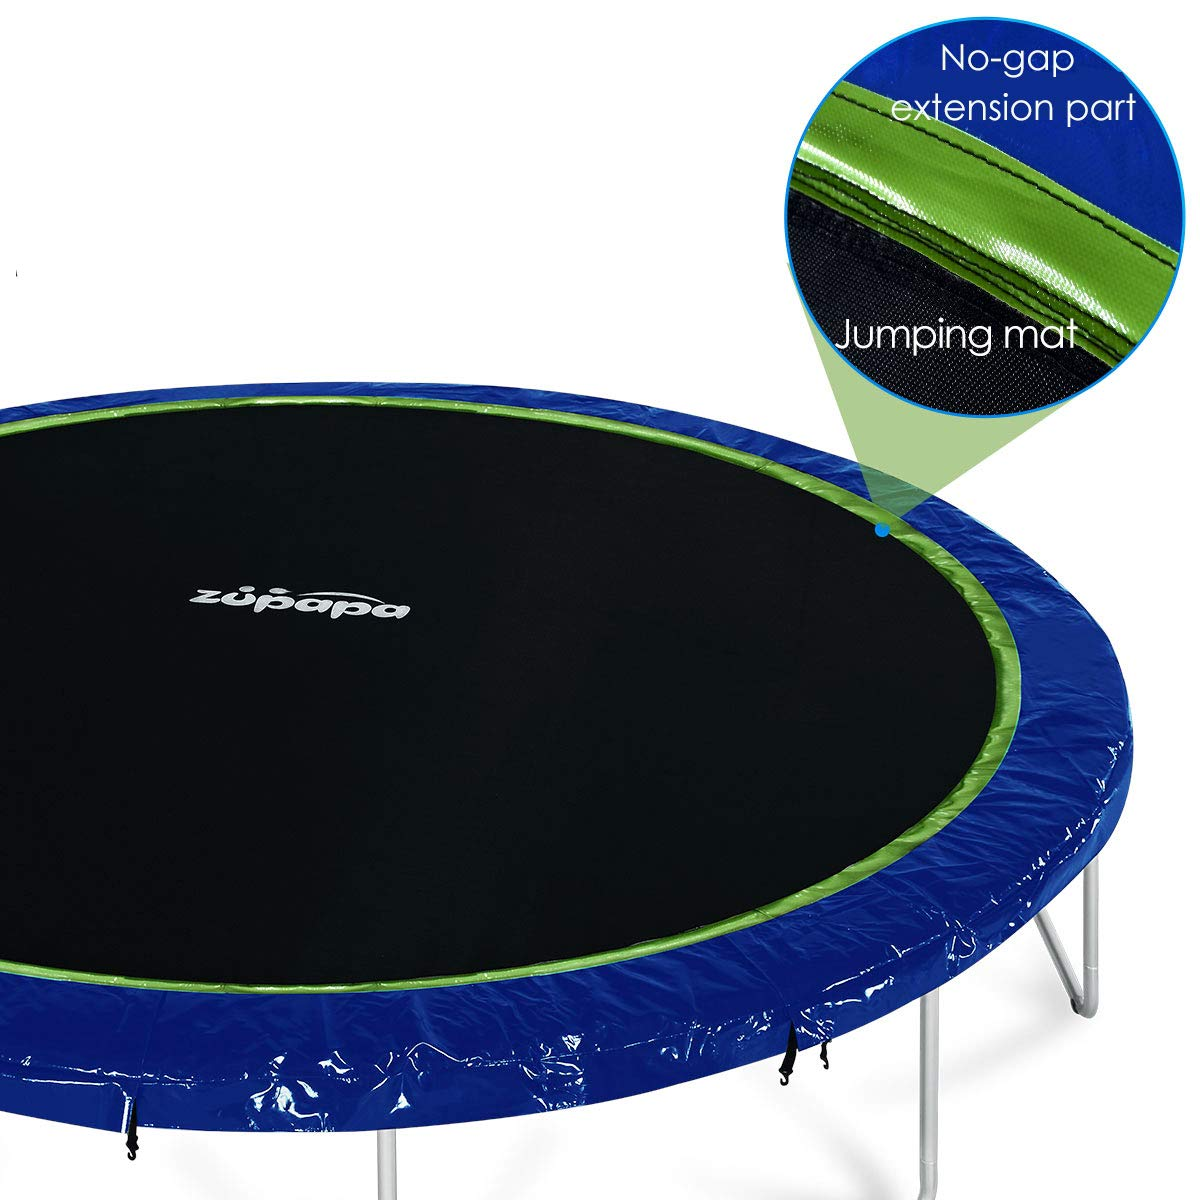 Zupapa 2019 Trampoline 15FT 14FT 12FT 10FT Newest No-Gap Jumping Mat Replacement (10FT)